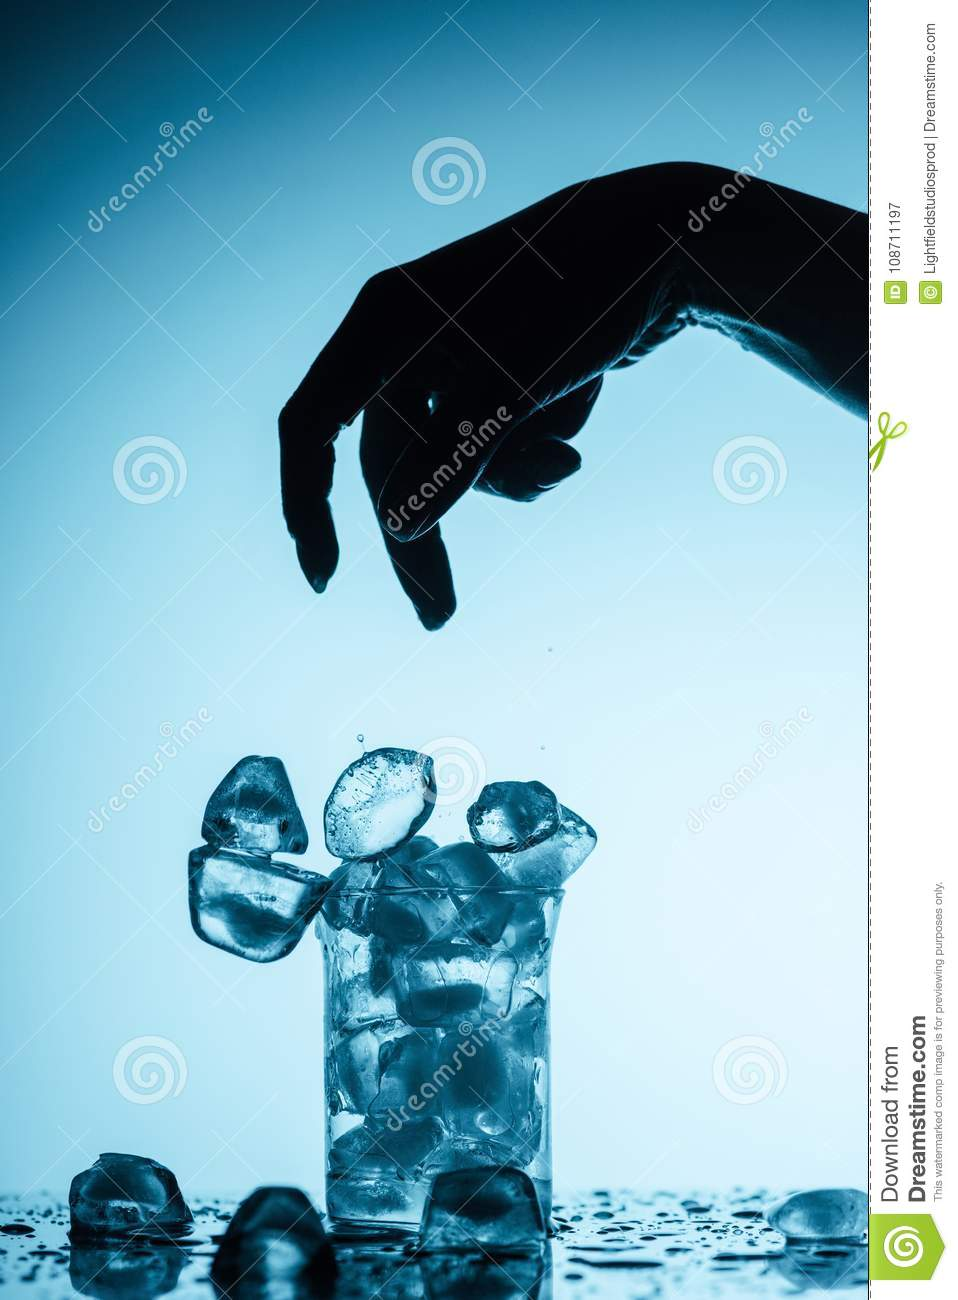 Person throwing ice cubes into glass